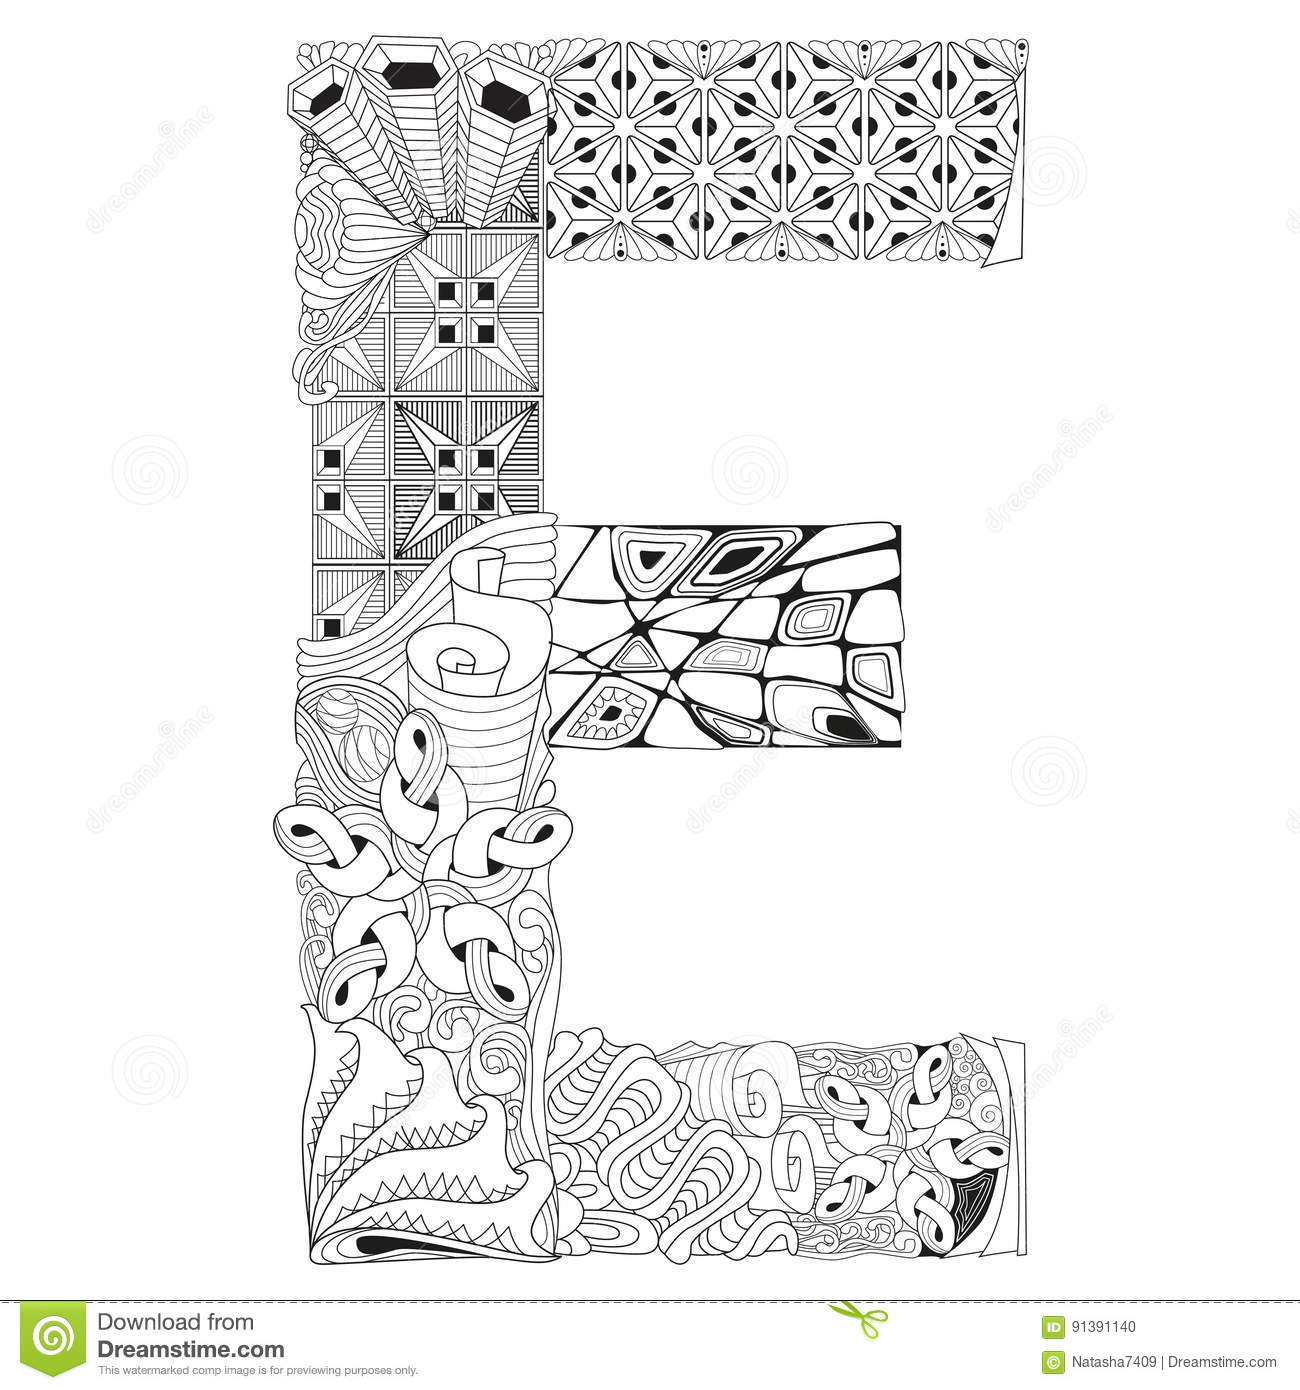 Letra E Para Colorear Objeto Decorativo Del Zentangle Del